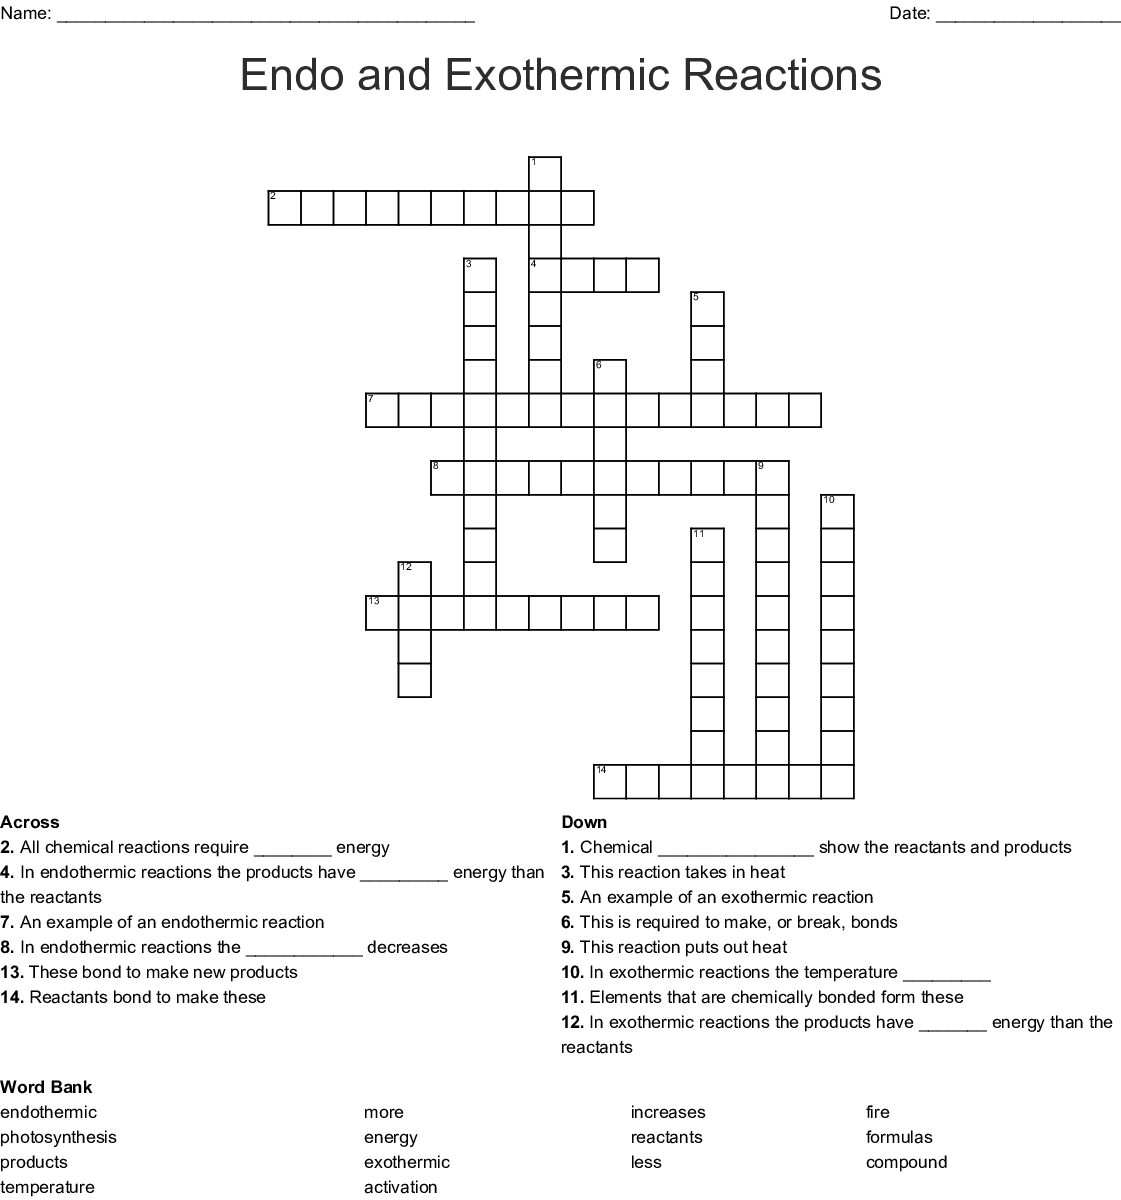 Endo And Exothermic Reactions Crossword